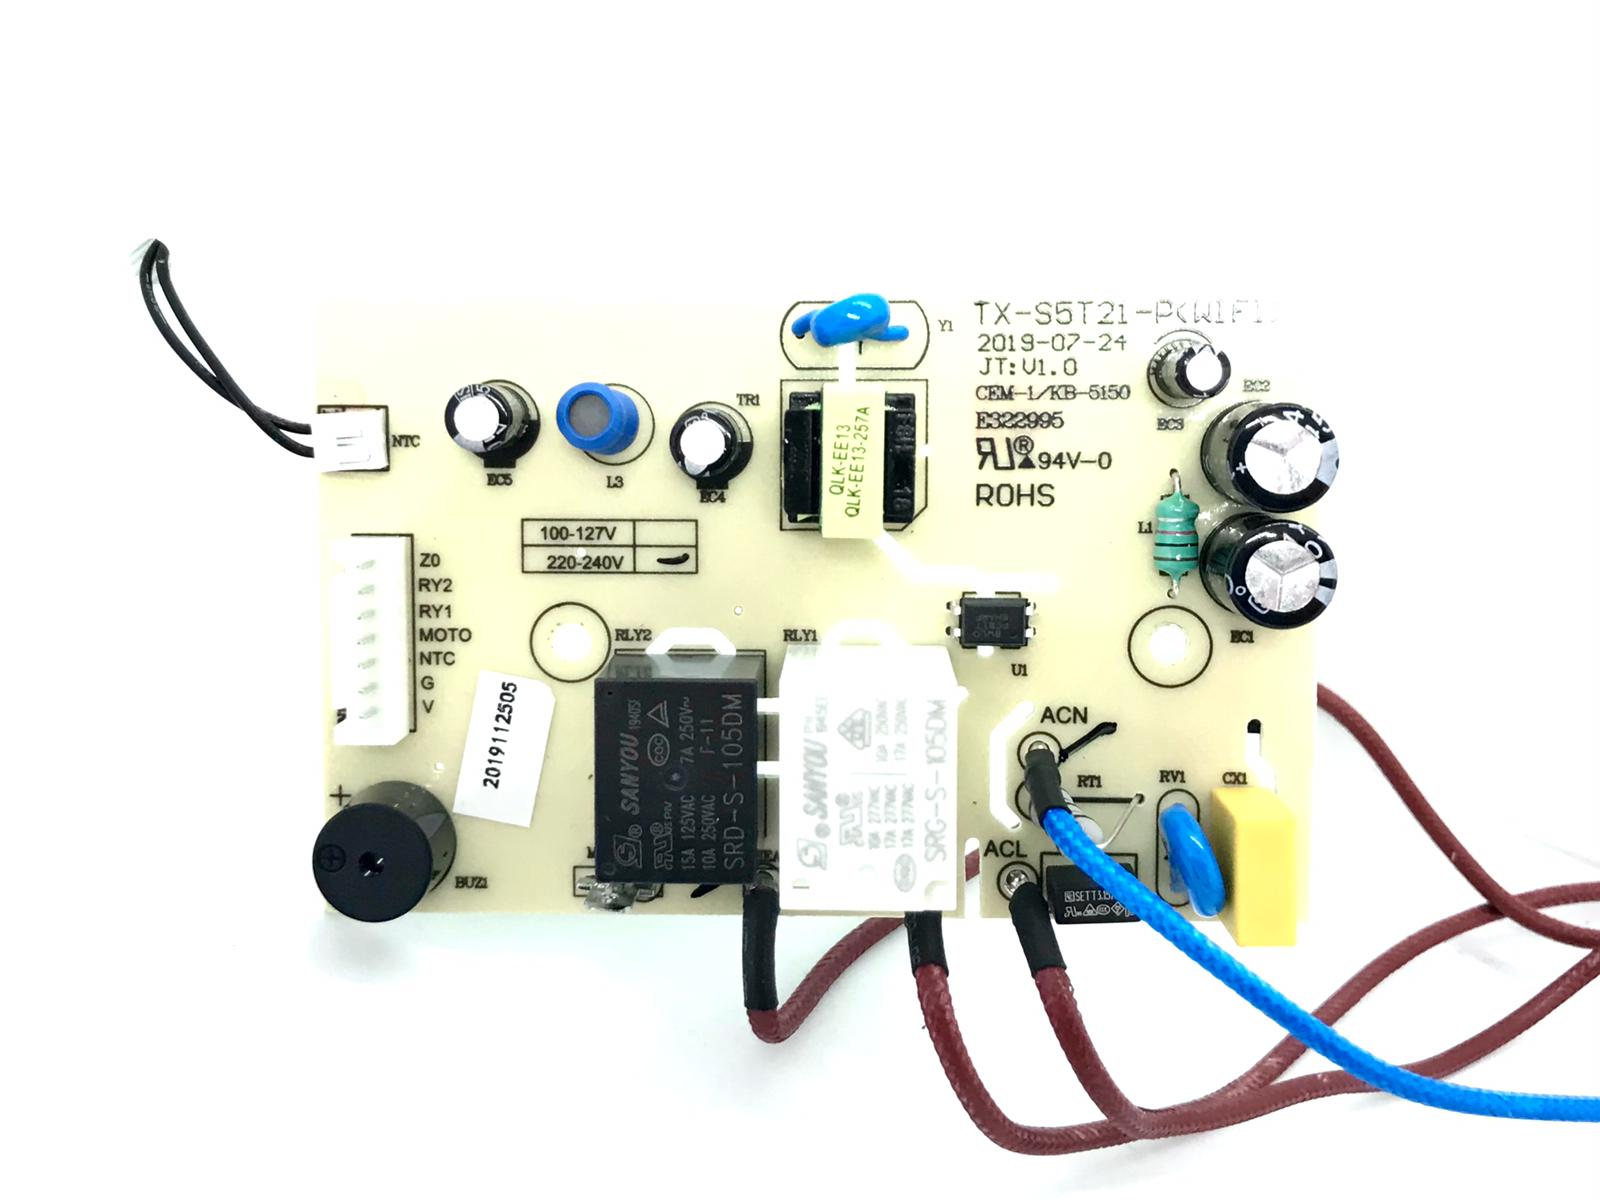 Power Board TX-S521-P Proscenic T21